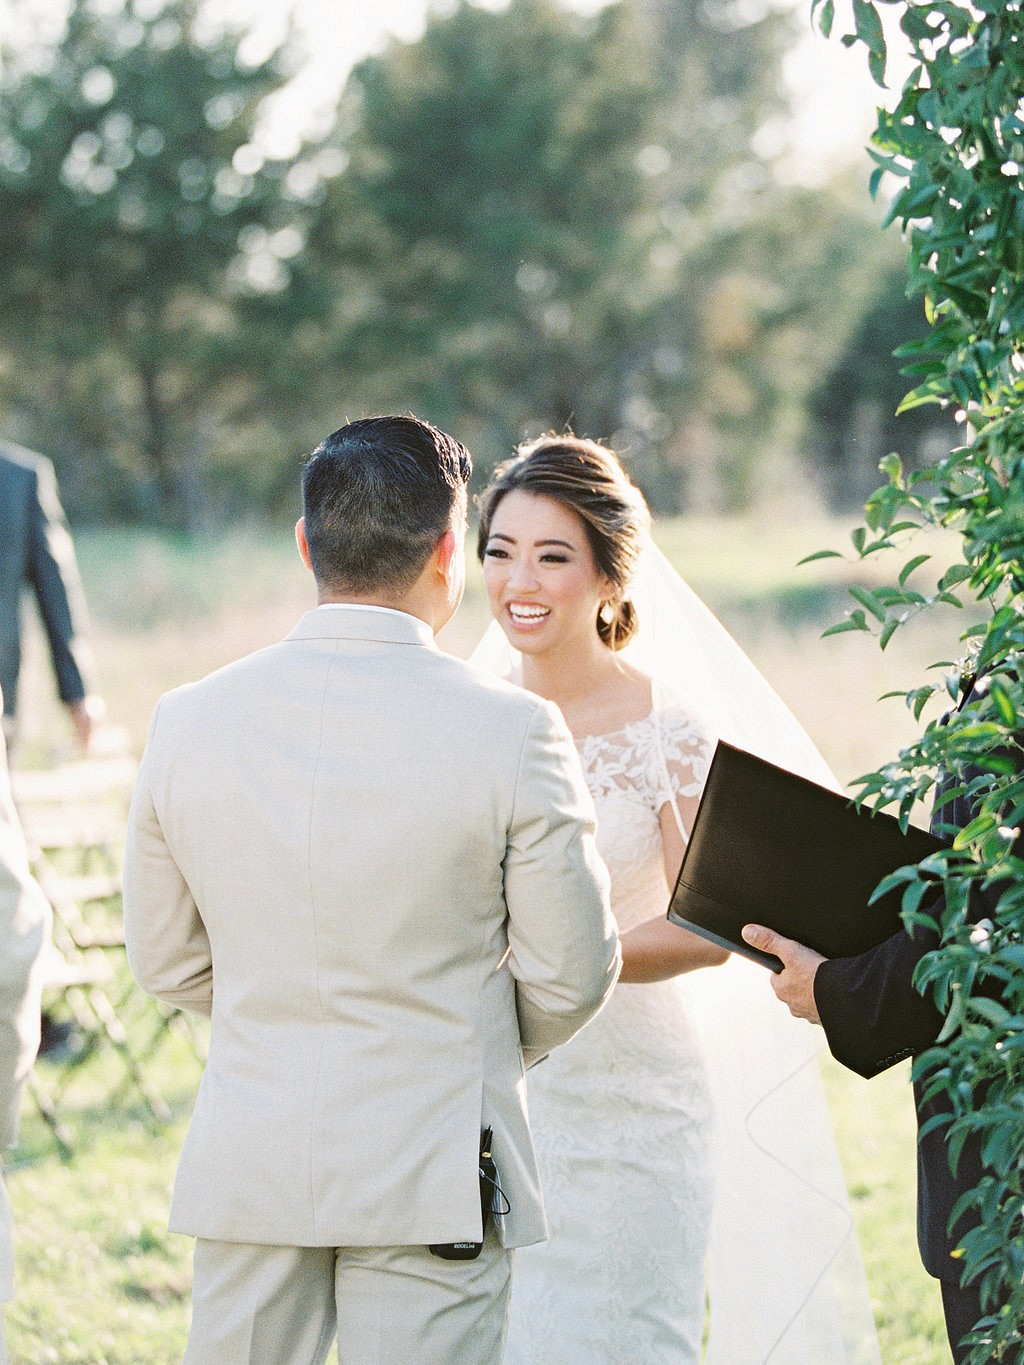 Brandy and Albert's Blush and Neutral Outdoor Wedding